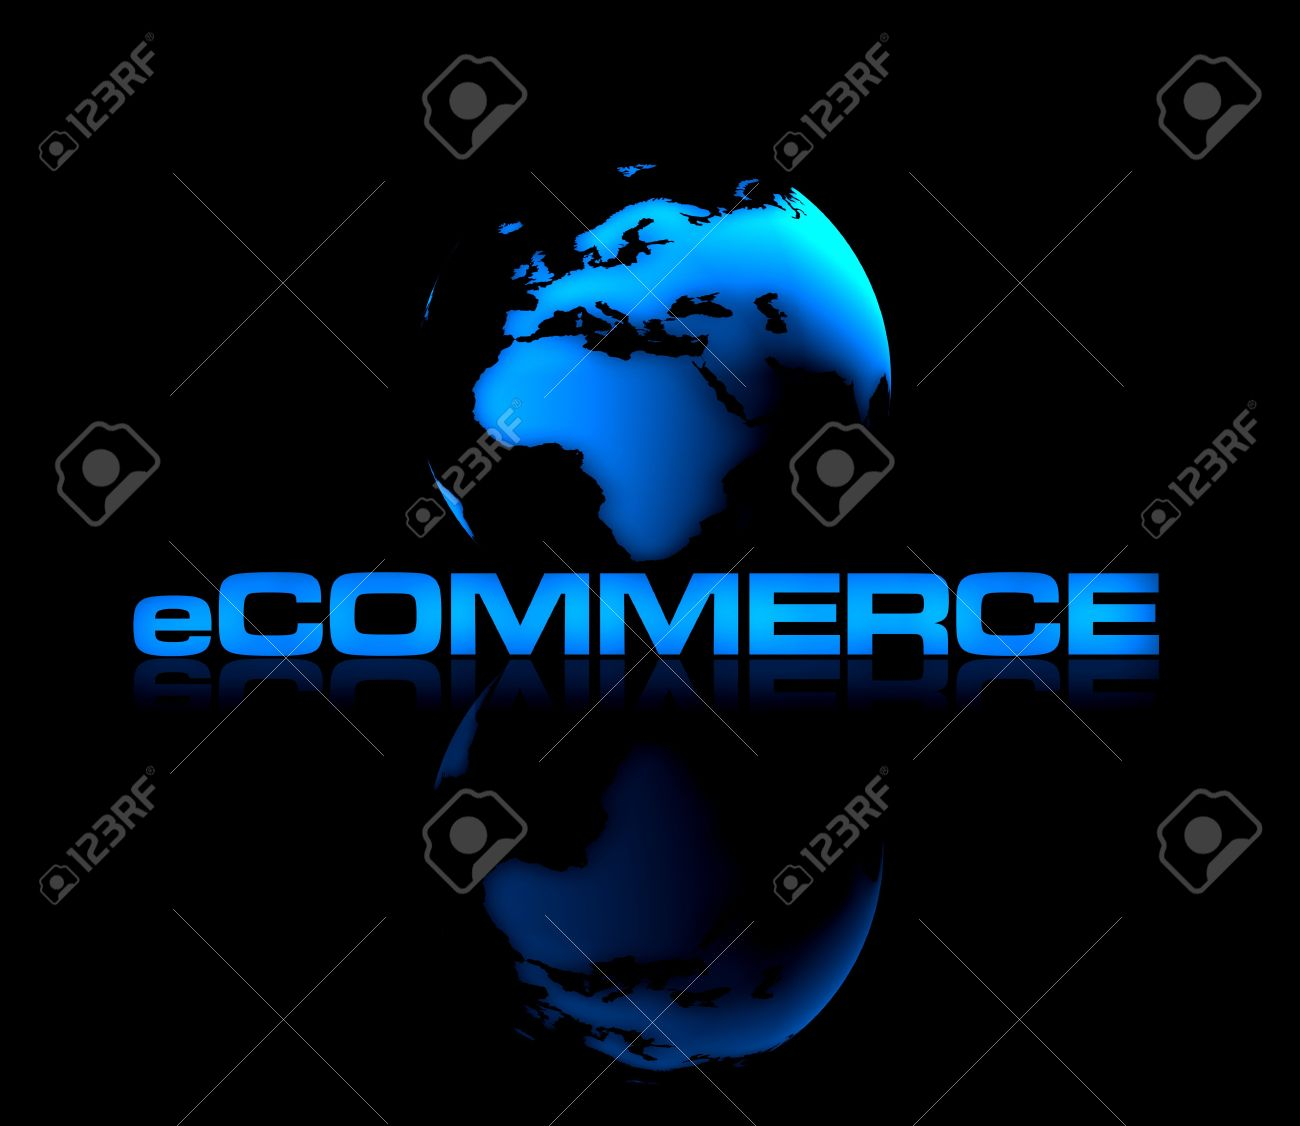 E commerce background images - Abstract Shiny Globe On Black Background With Ecommerce Type In Front Stock Photo 922642